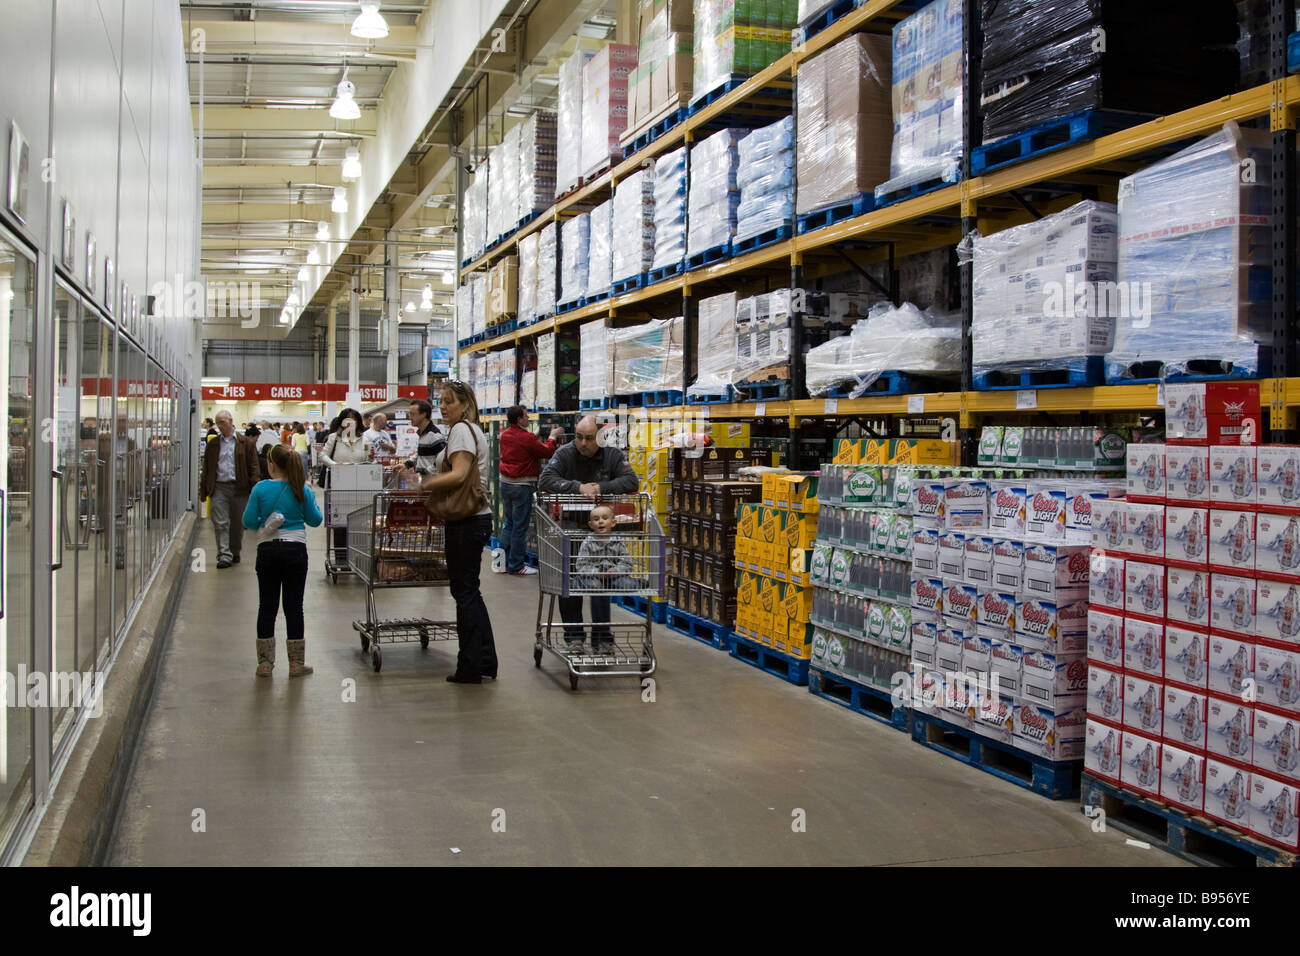 Costco Warehouse - Watford - Hertfordshire - Stock Image